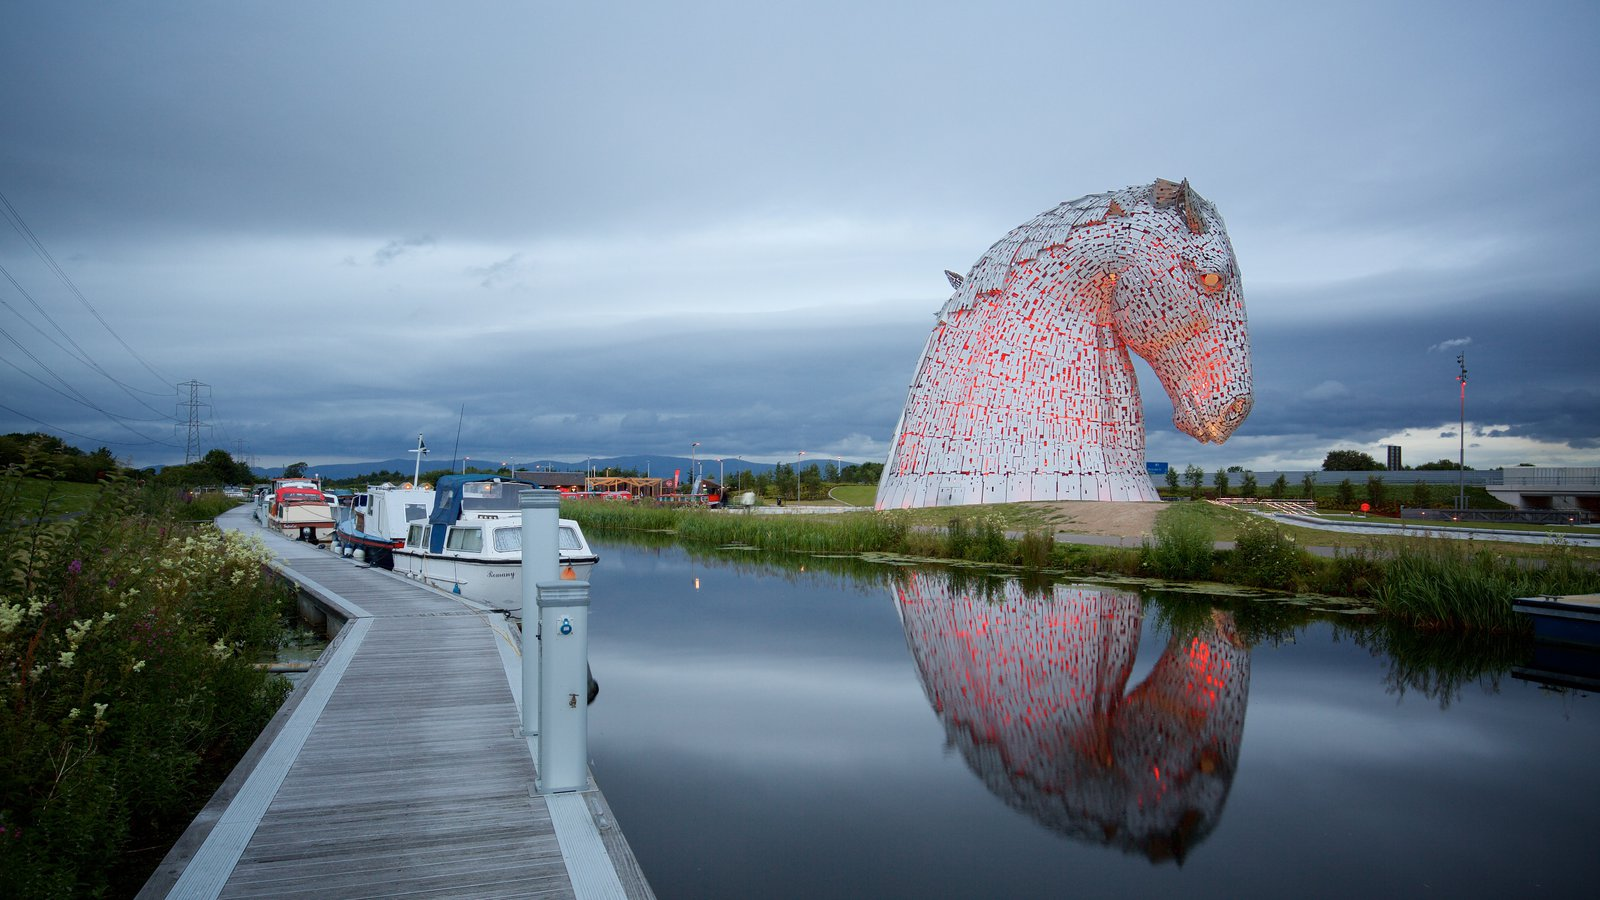 Grangemouth showing outdoor art, night scenes and a river or creek